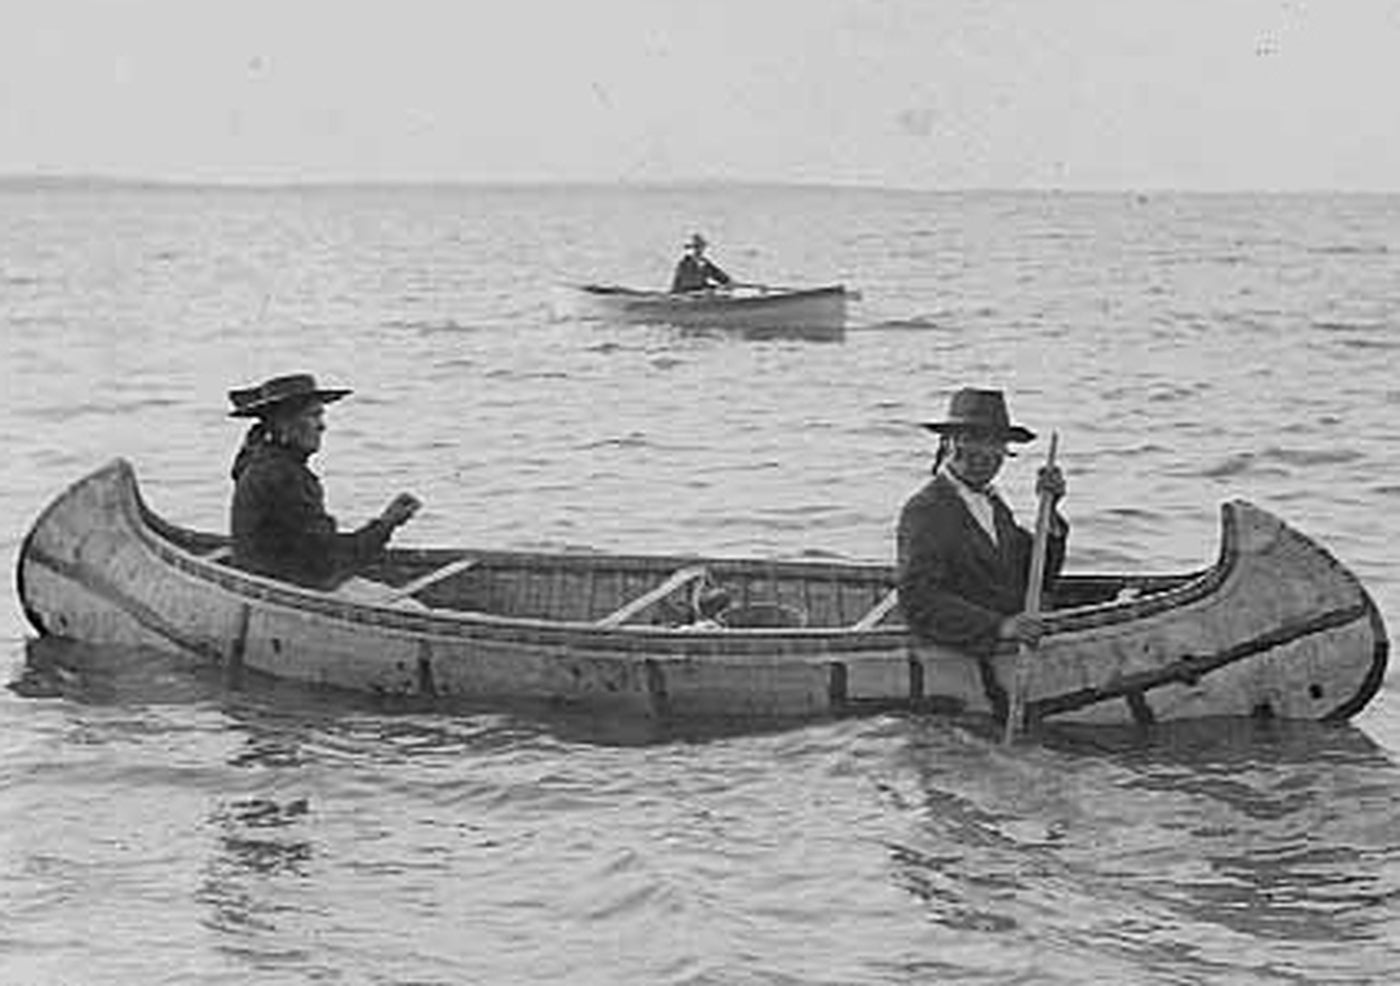 Antique image of Native Americans sharing a canoe in open water.